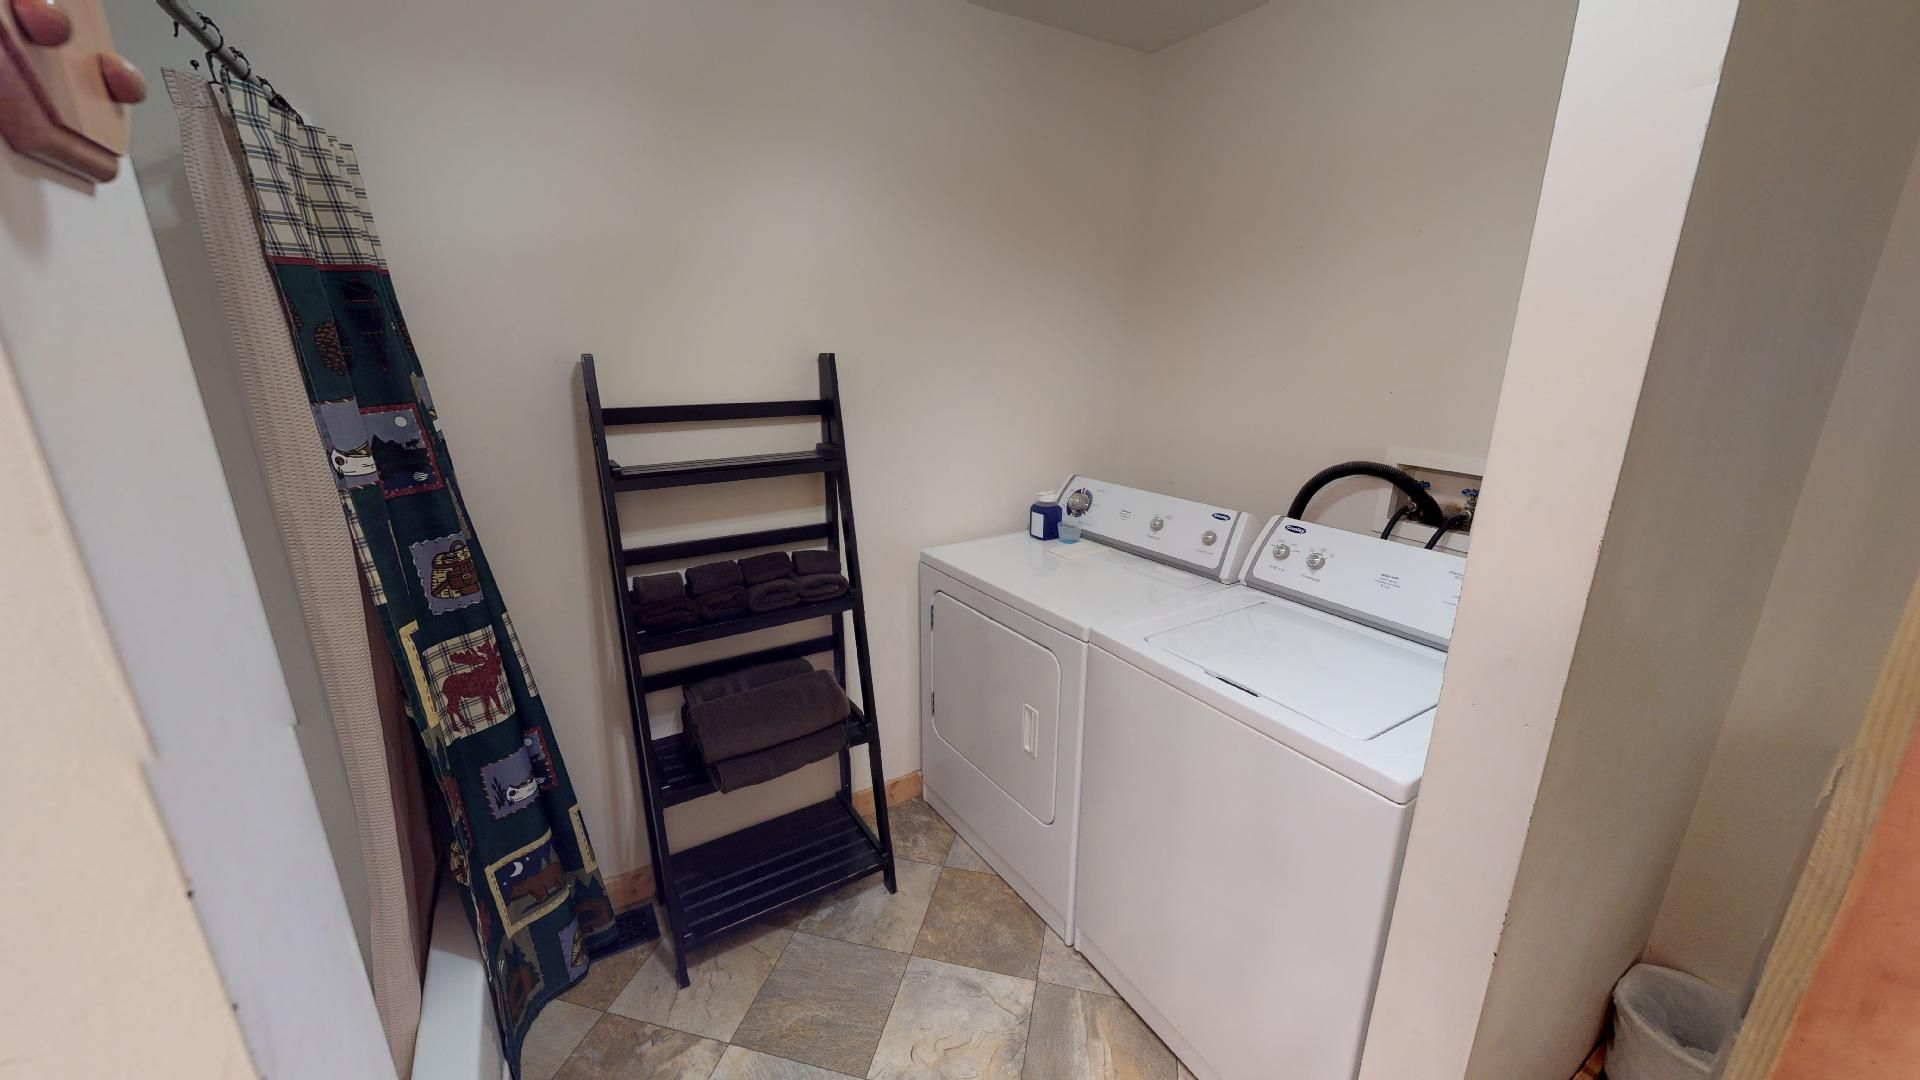 Sunrise Full Bathroom - Walk in shower and washer/dryer for guest usage.